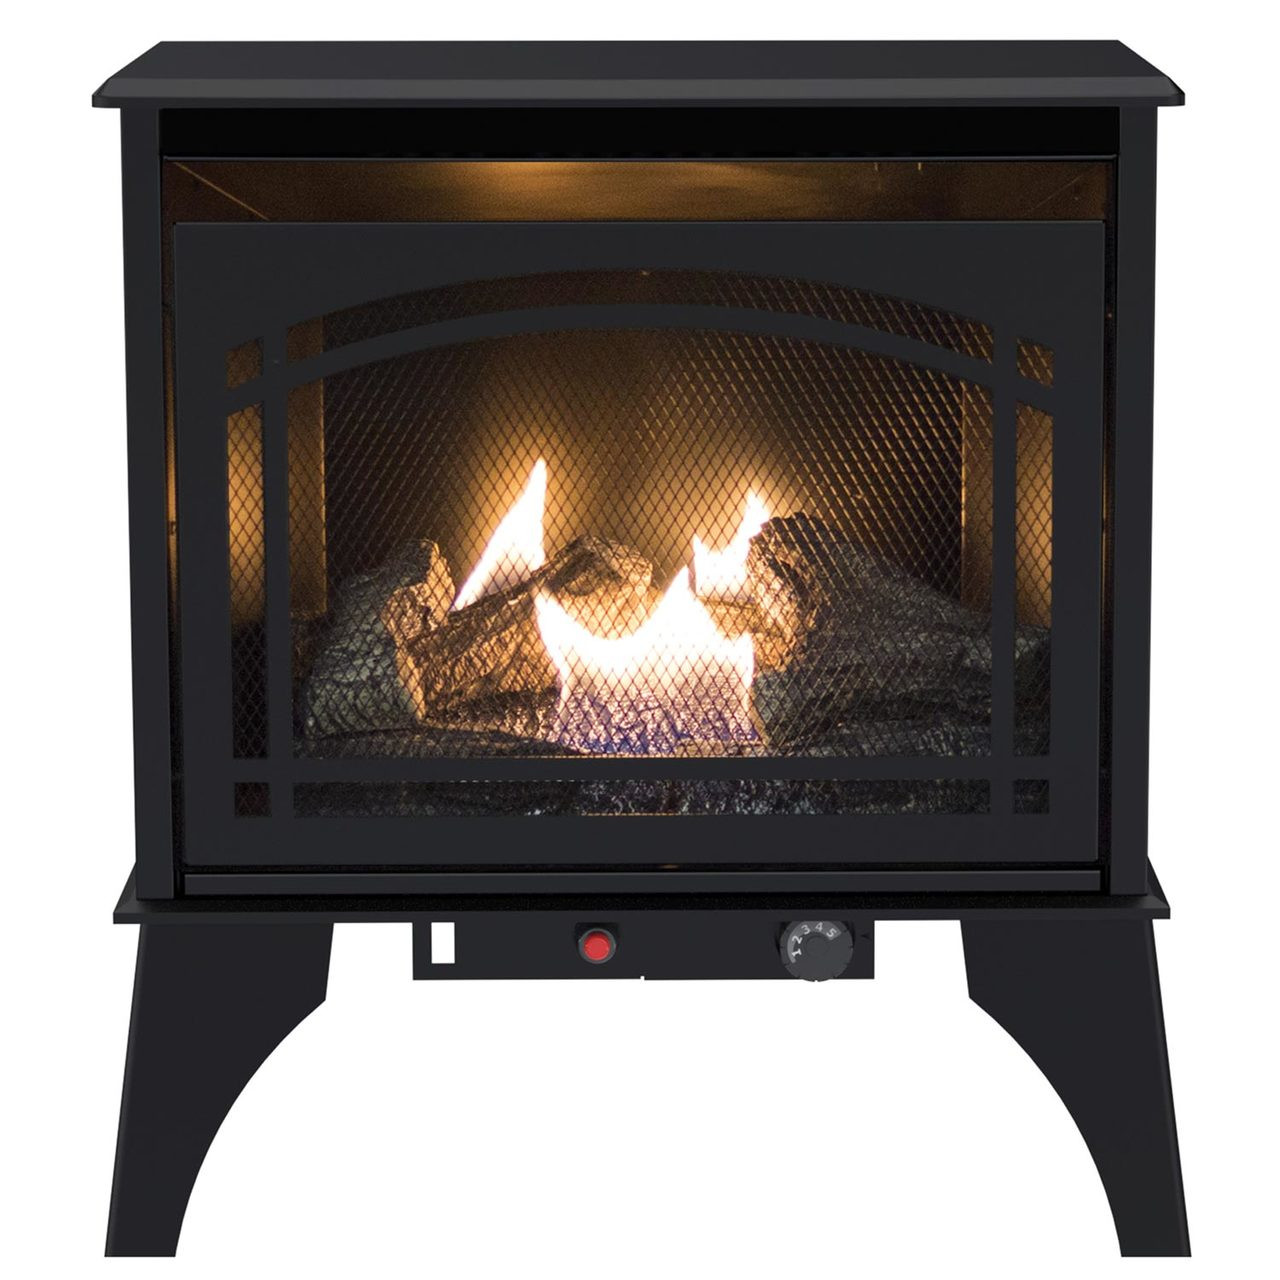 Propane Fireplace Installation Kozy World Gsd2210 The Phoenix Vent Free 20 000 Btu Propane Lp Or Natural Gas Ng Stove